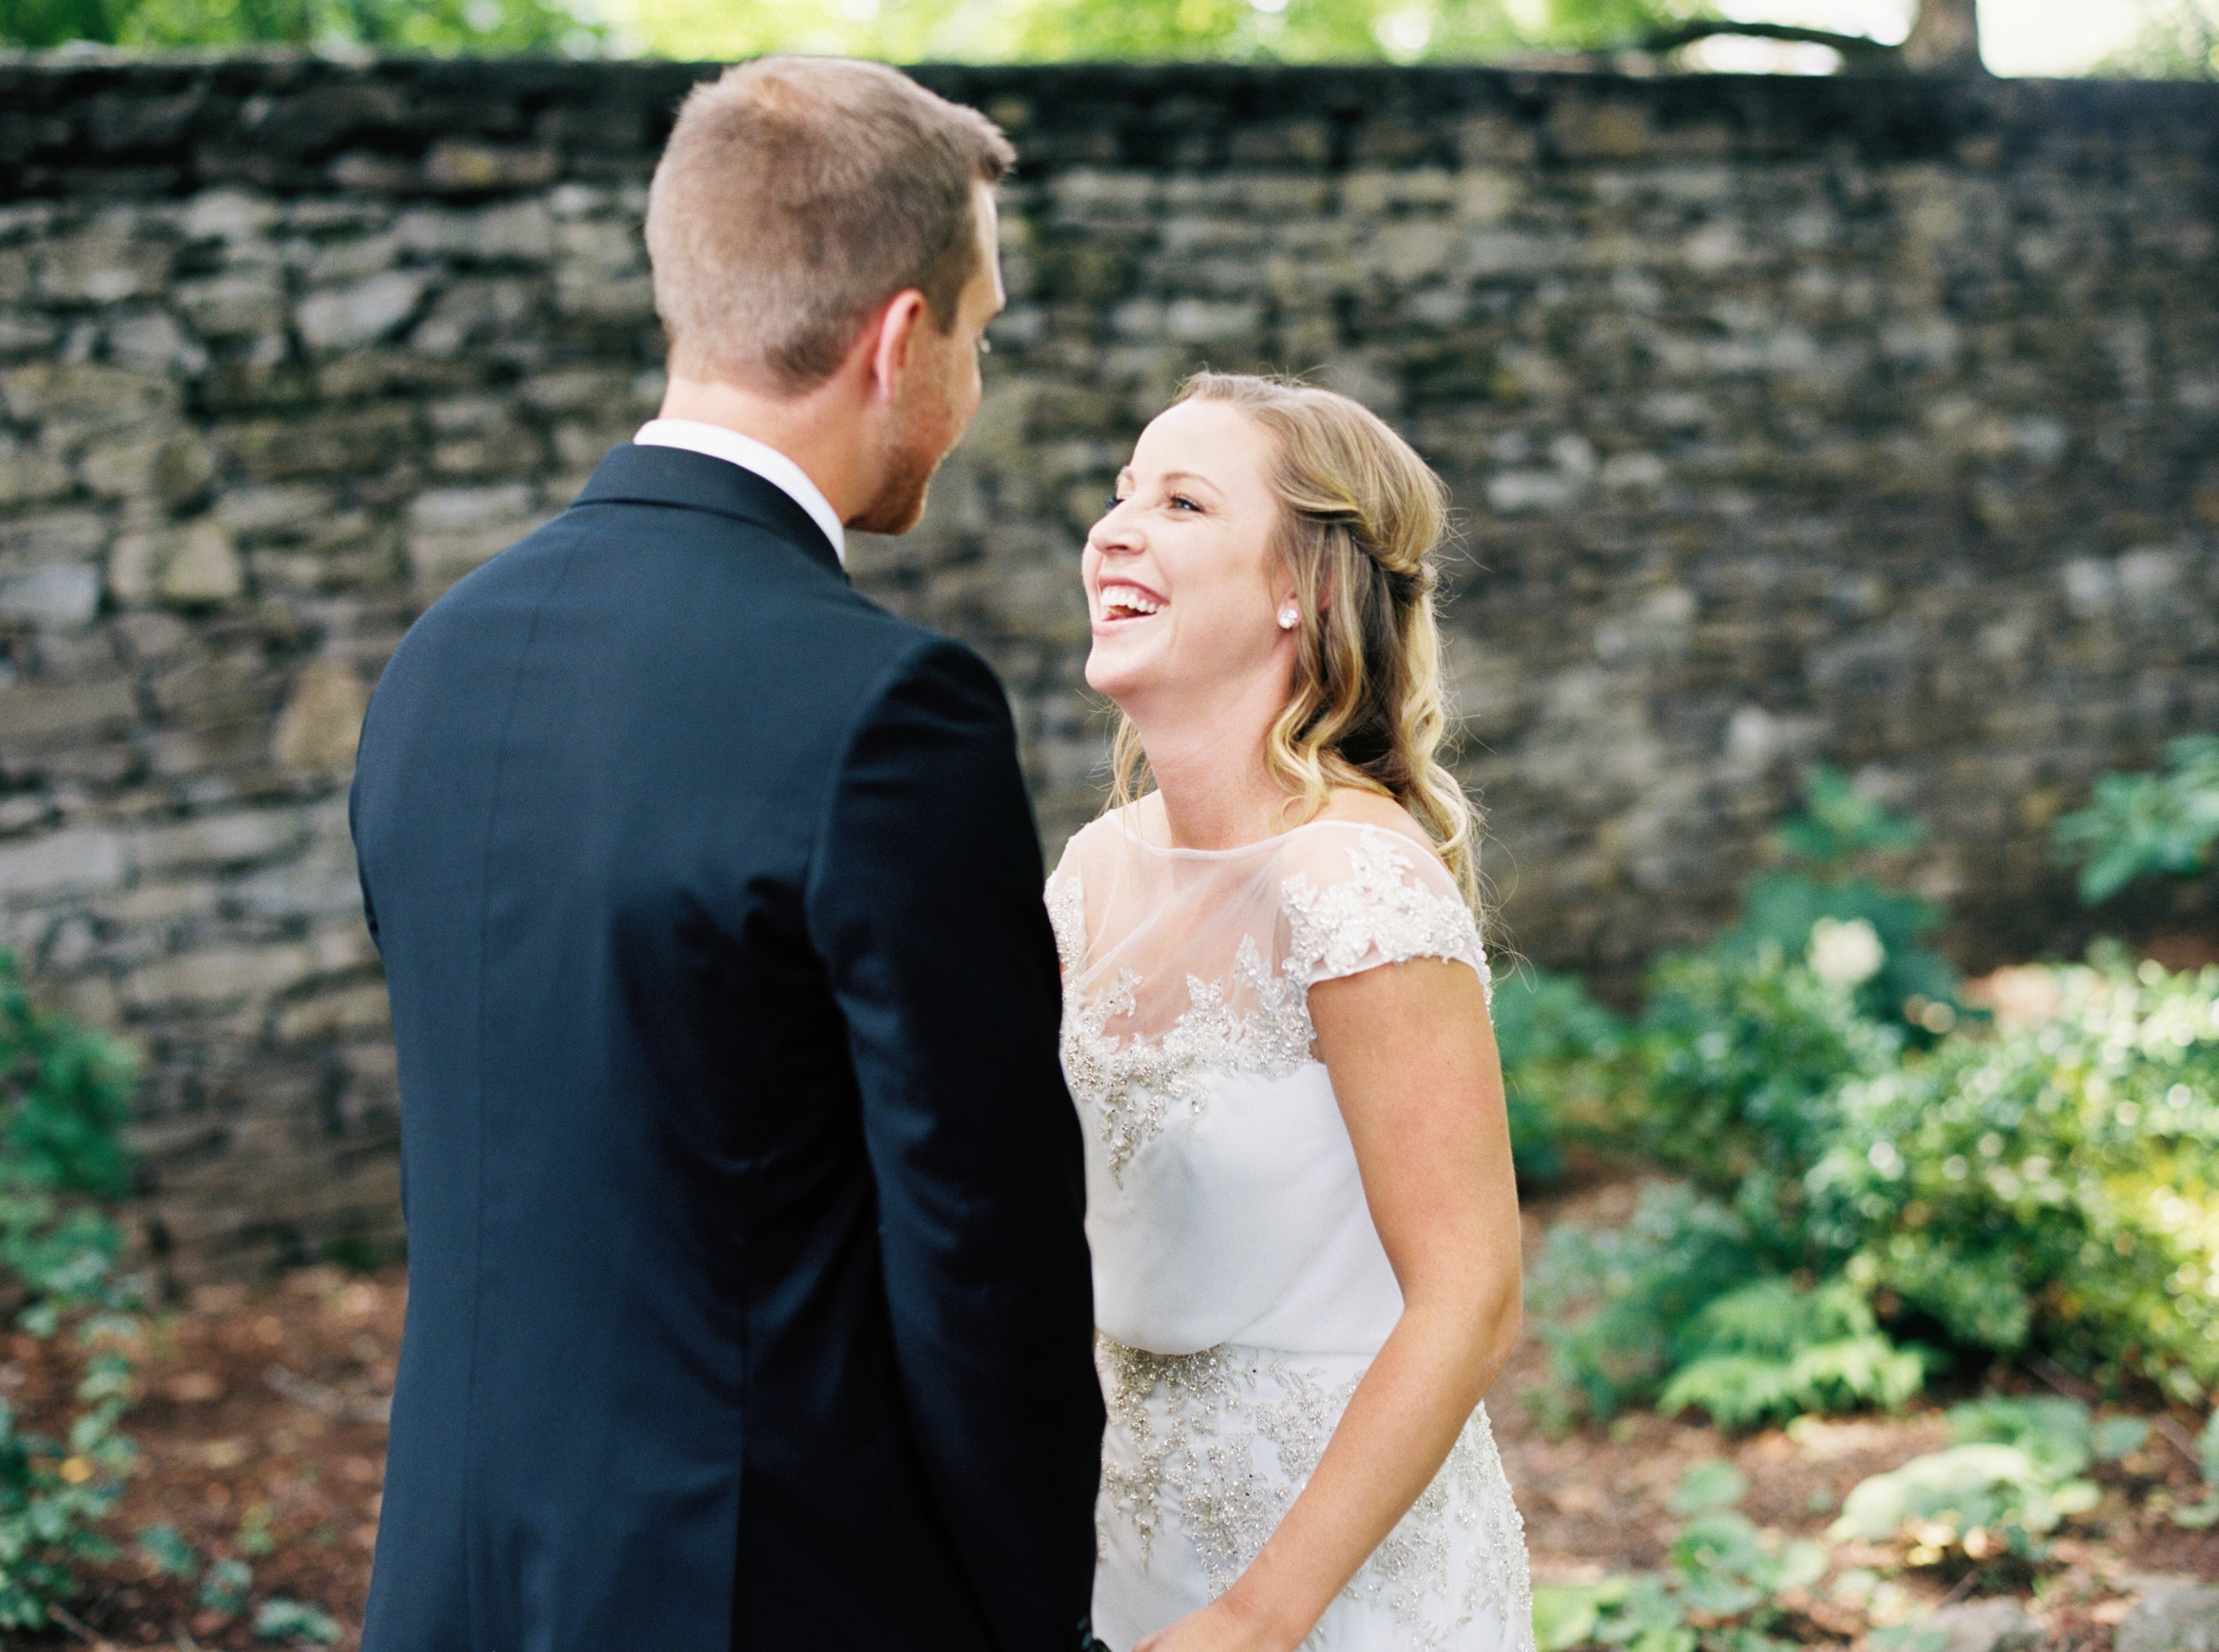 Katie_Matt_Wedding_Knoxville_Botanical_Garden_Abigail_Malone_photography-81.jpg